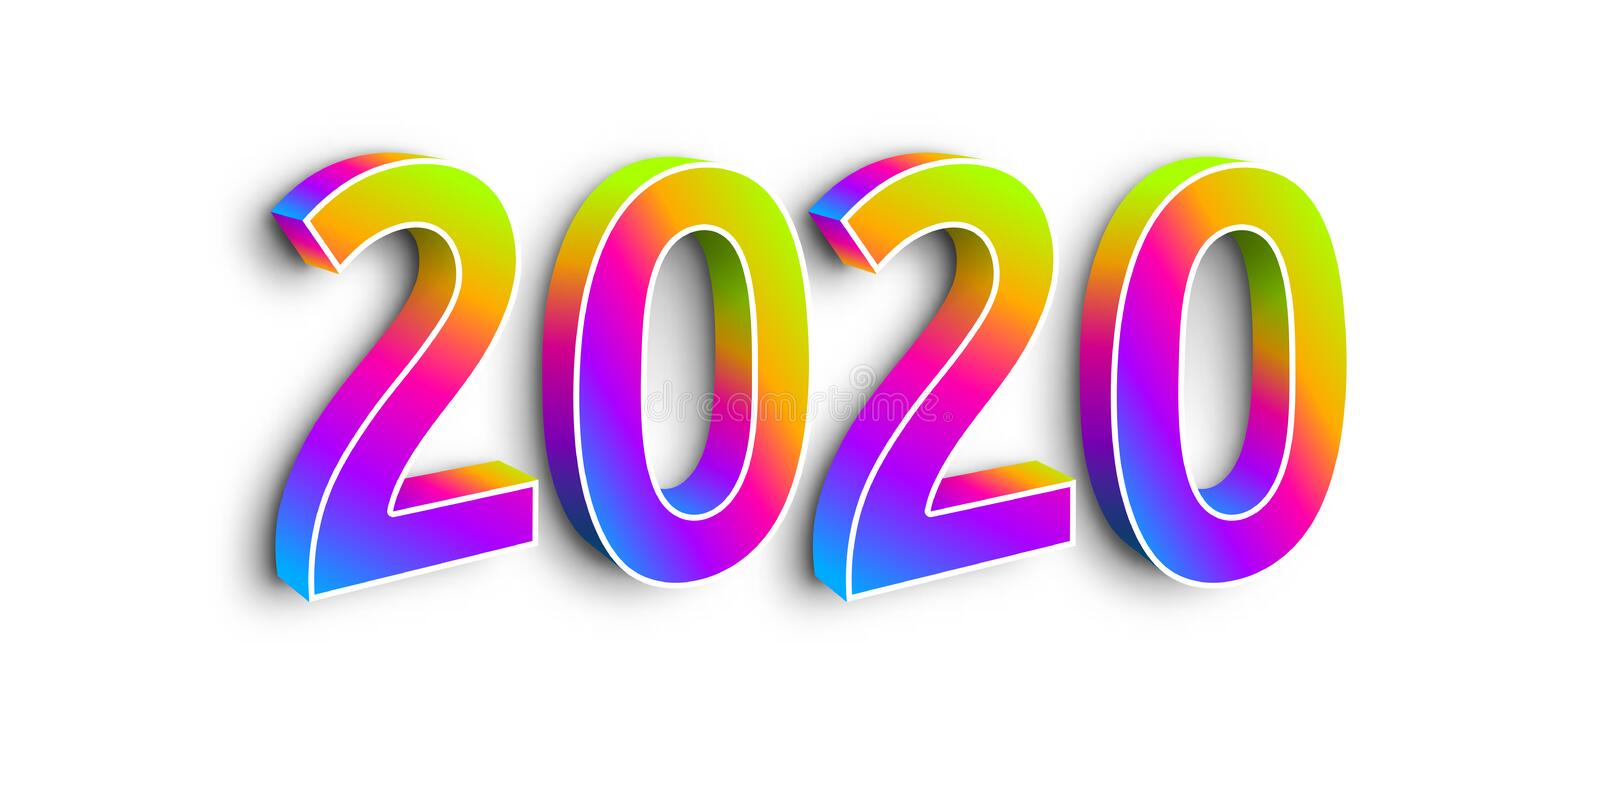 Neon Numbers 2020 on White Background. stock illustration